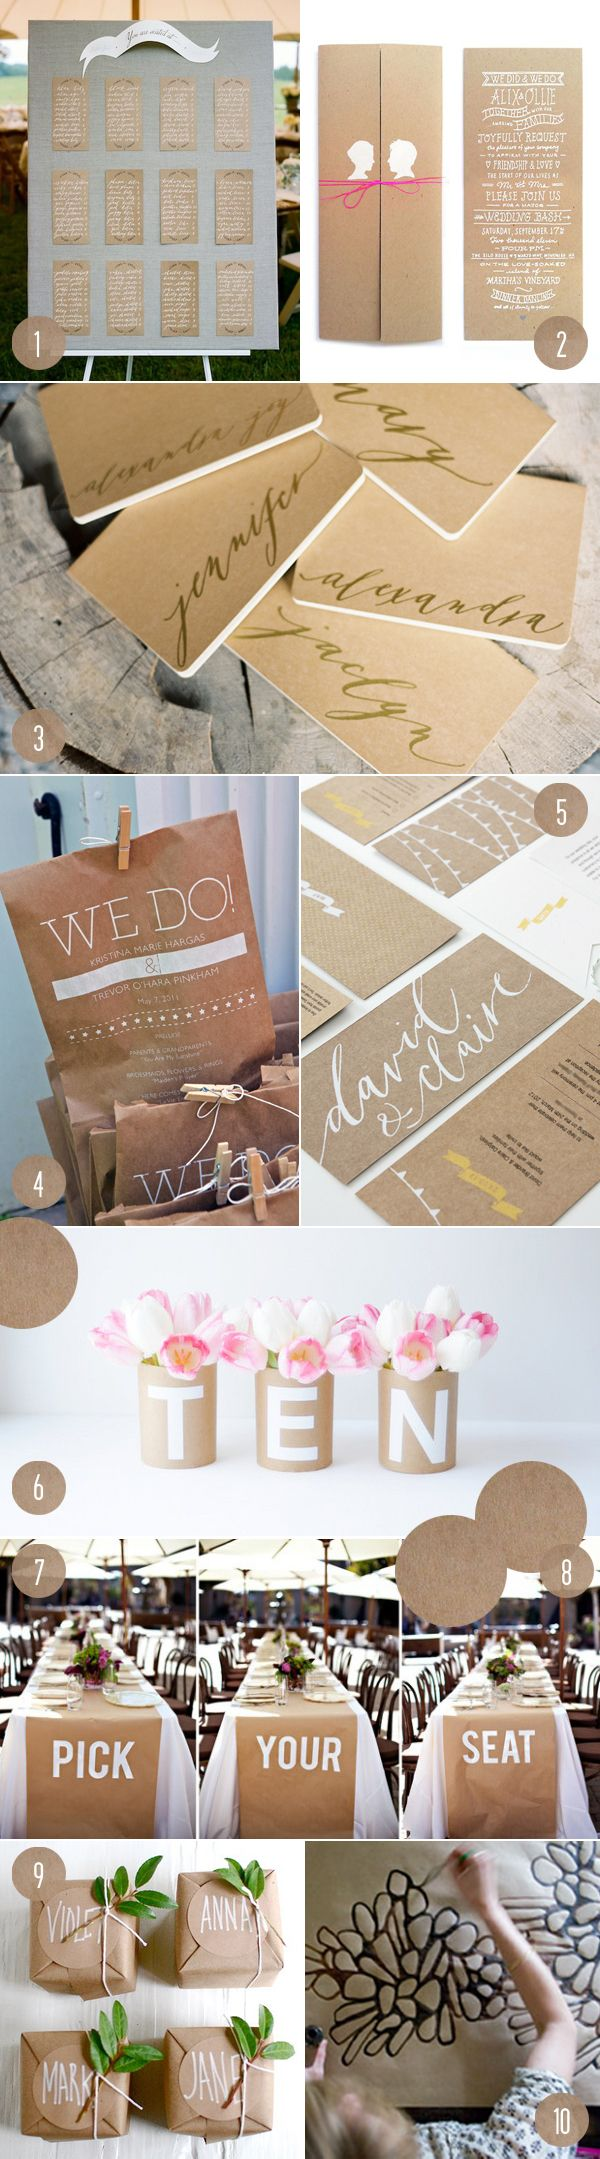 10 kraft paper projects - love the painted runner and the idea for people to pick their own seat at the reception